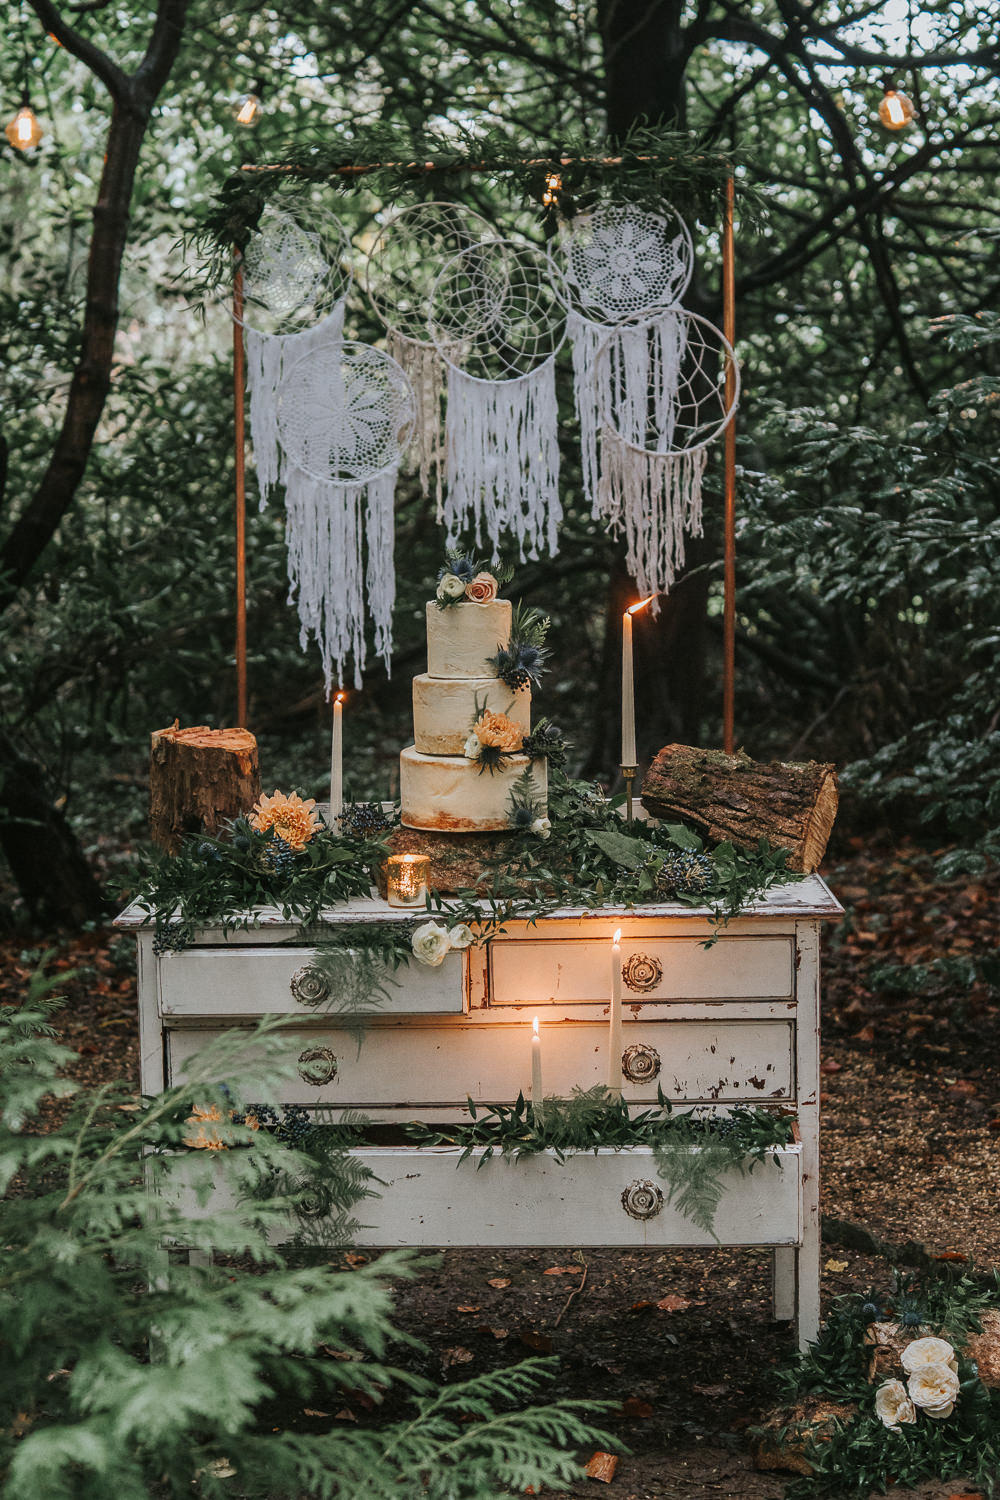 Cake Table Dresser Macrame Backdrop Candles Greenery Woodland Wedding Inspiration Stephanie Dreams Photography